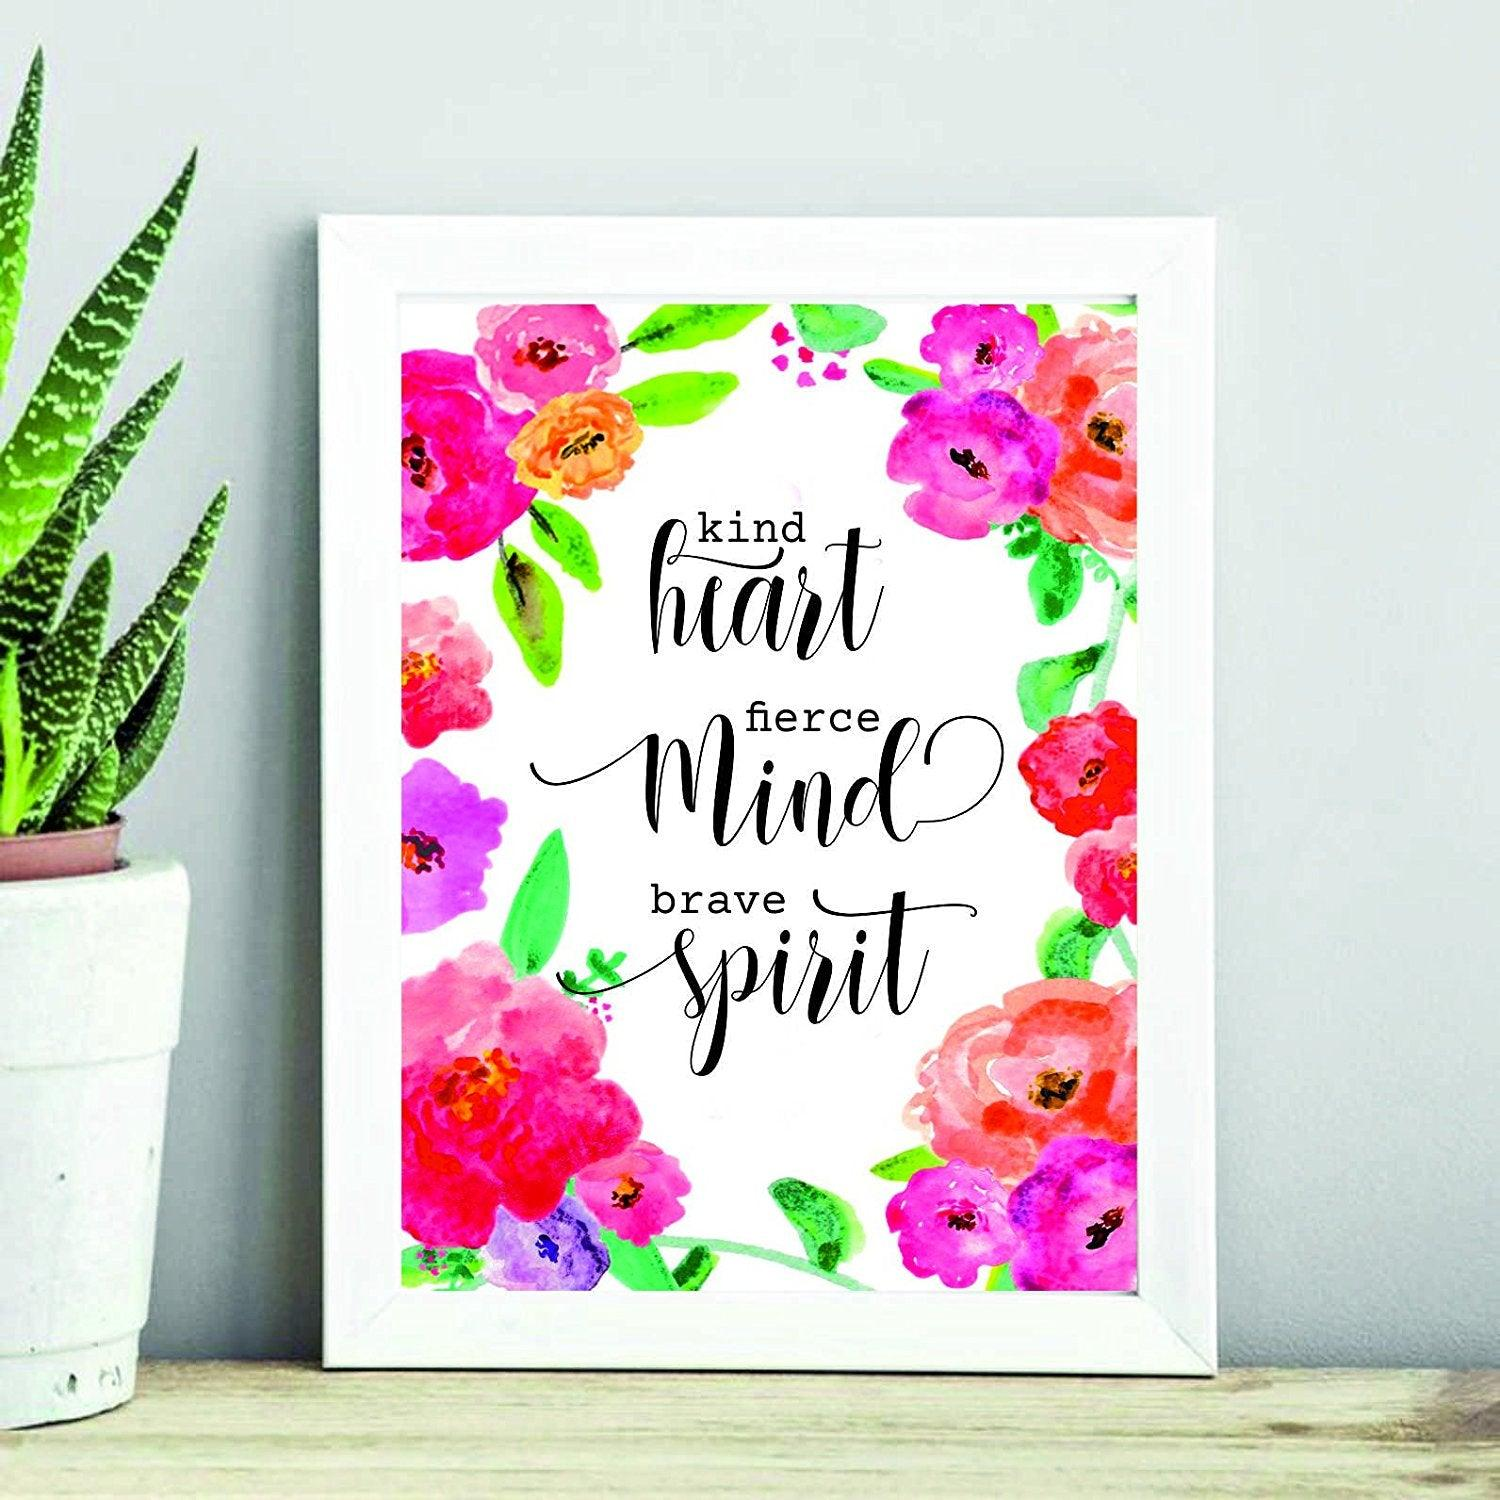 Motivational Print - Kind heart fierce mind brave spirit - living room - Floral Print - Inspirational Quote - Home Decor - Office Decor - Printable Decor - Calligraphy Art - positive quotes - kind - BOSTON CREATIVE COMPANY